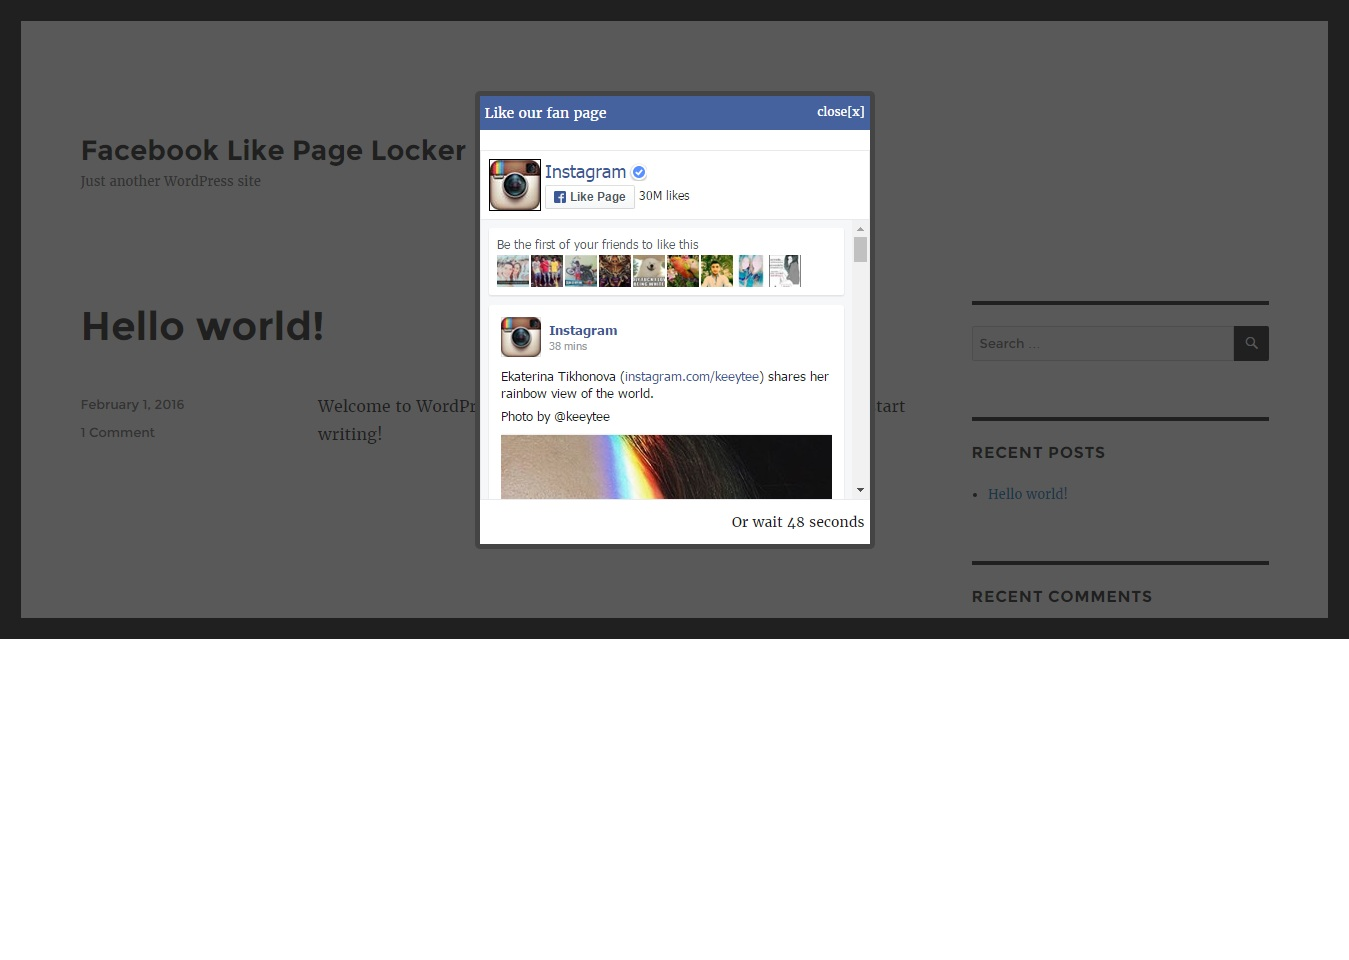 facebook-like-page-locker-lite screenshot 1